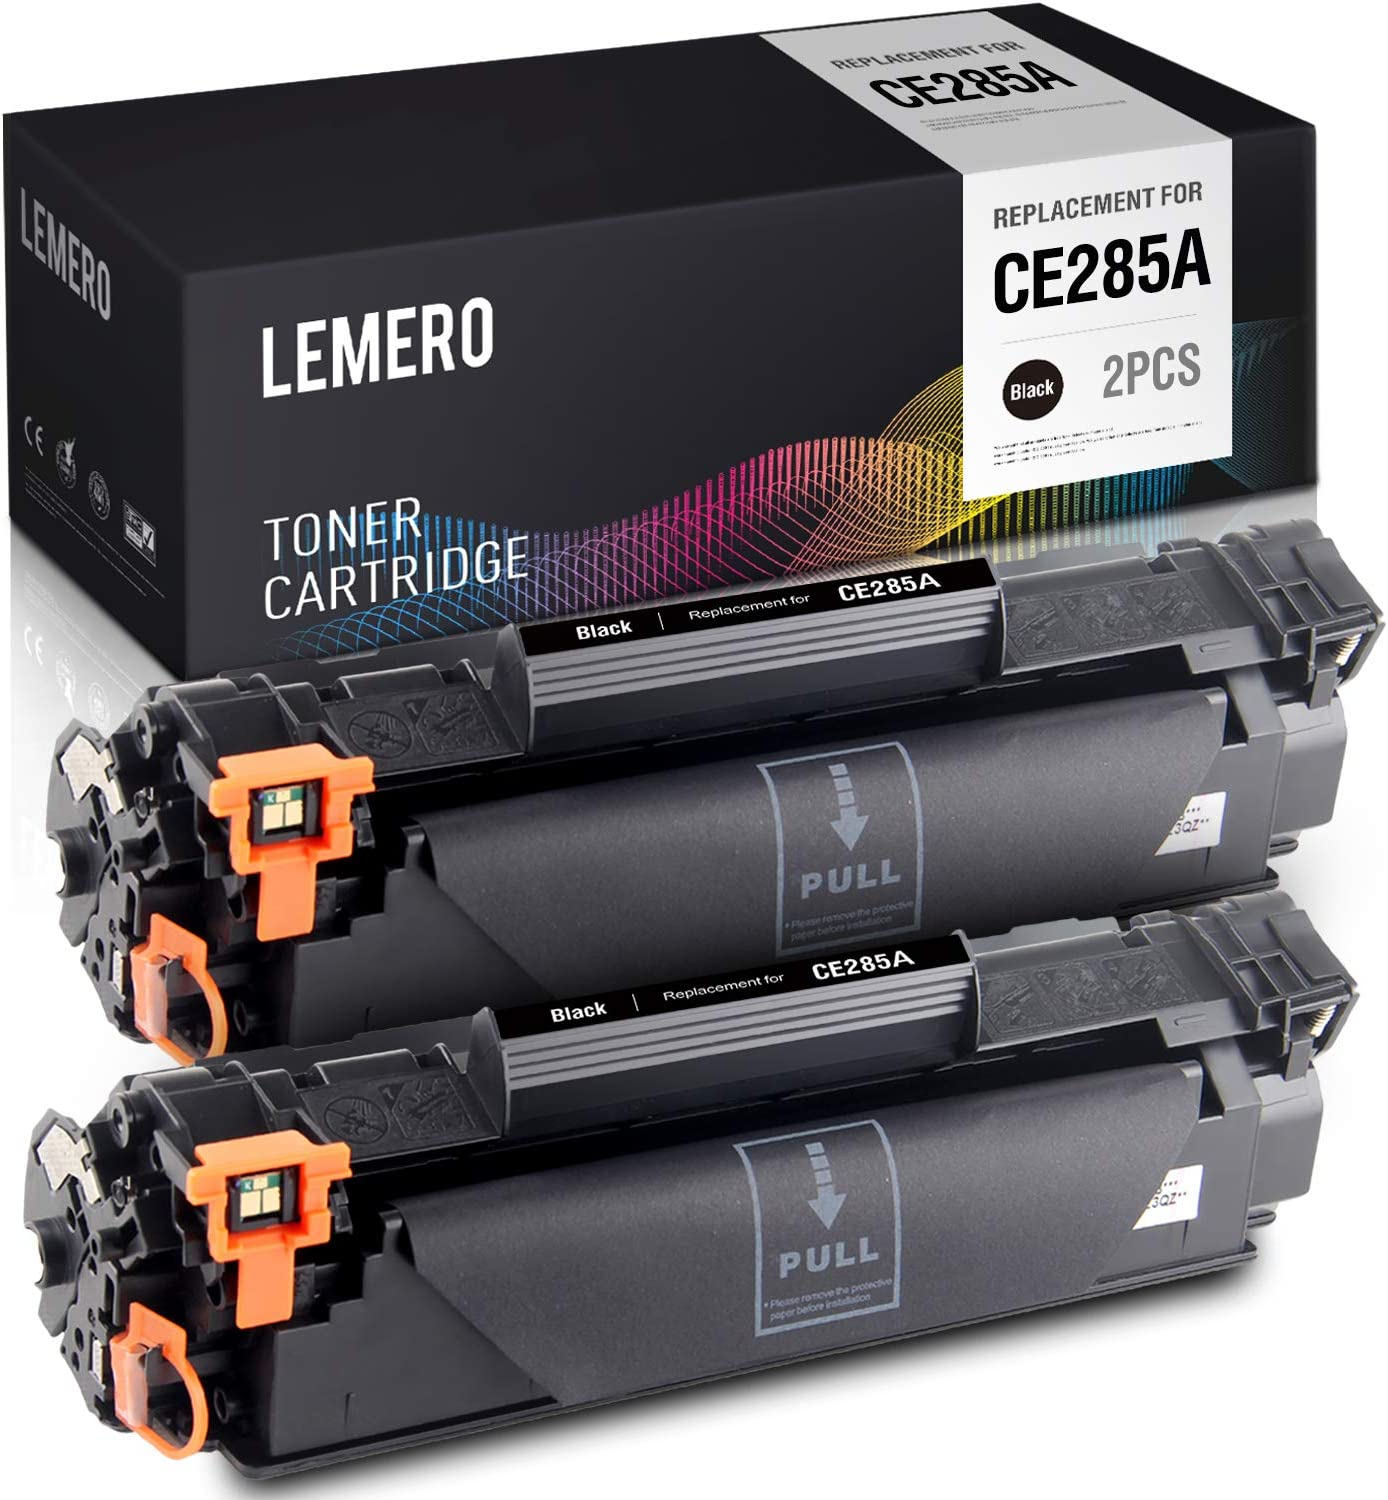 LEMERO Compatible Toner Cartridge Replacement for HP 85A CE285A - for HP Laserjet Pro P1102W P1109W M1132 M1212NF M1217NFW MFP Printer (Black, 2 Pack)